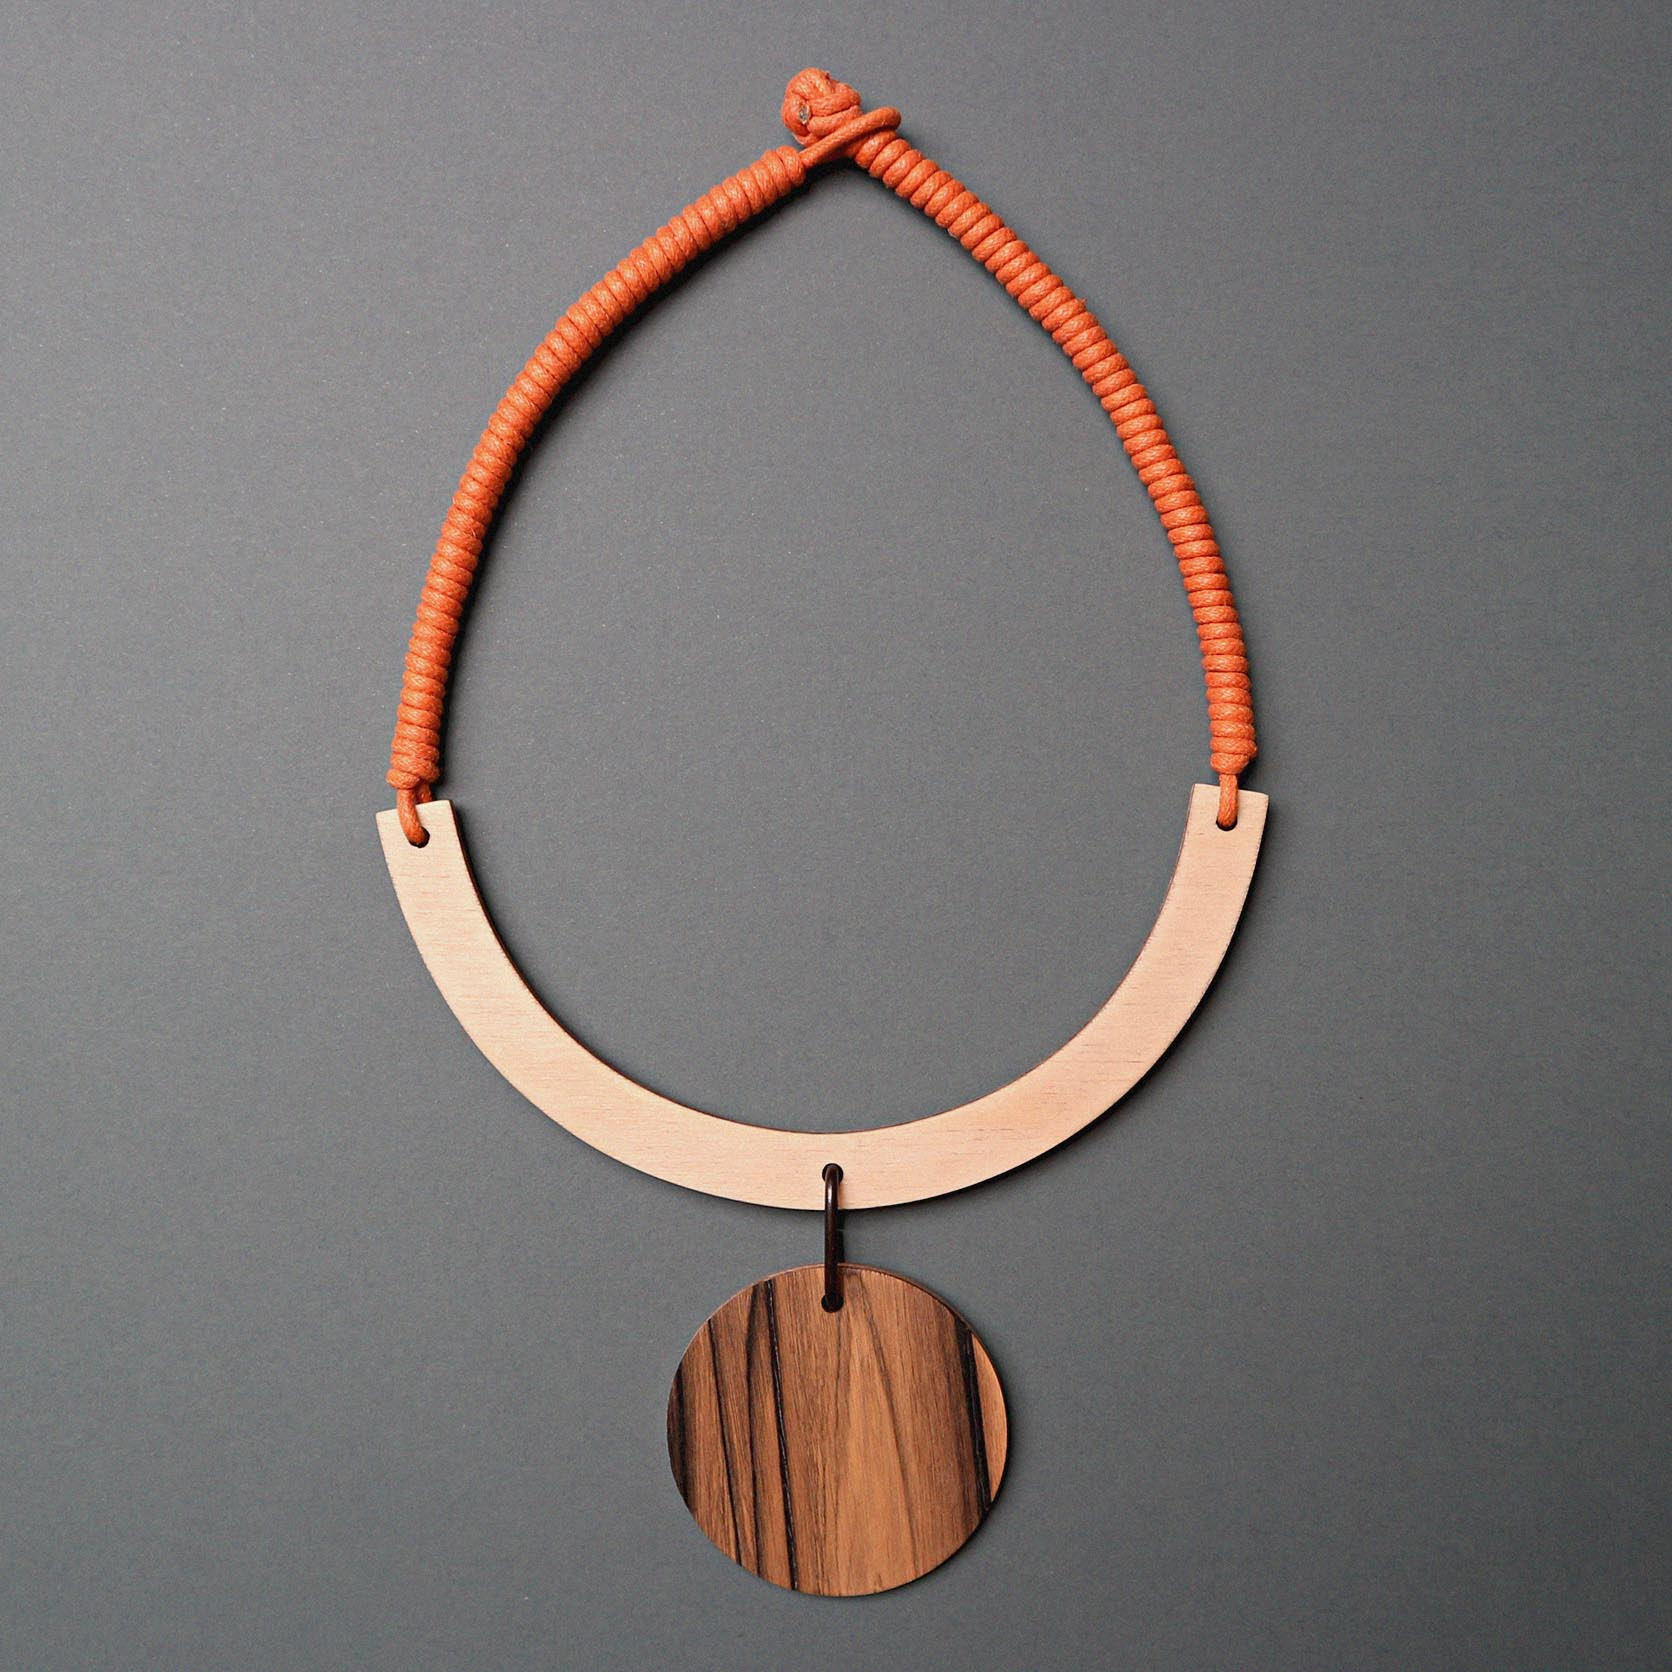 Ali has been busy developing her new Ebony Necklace inspired by our travels!